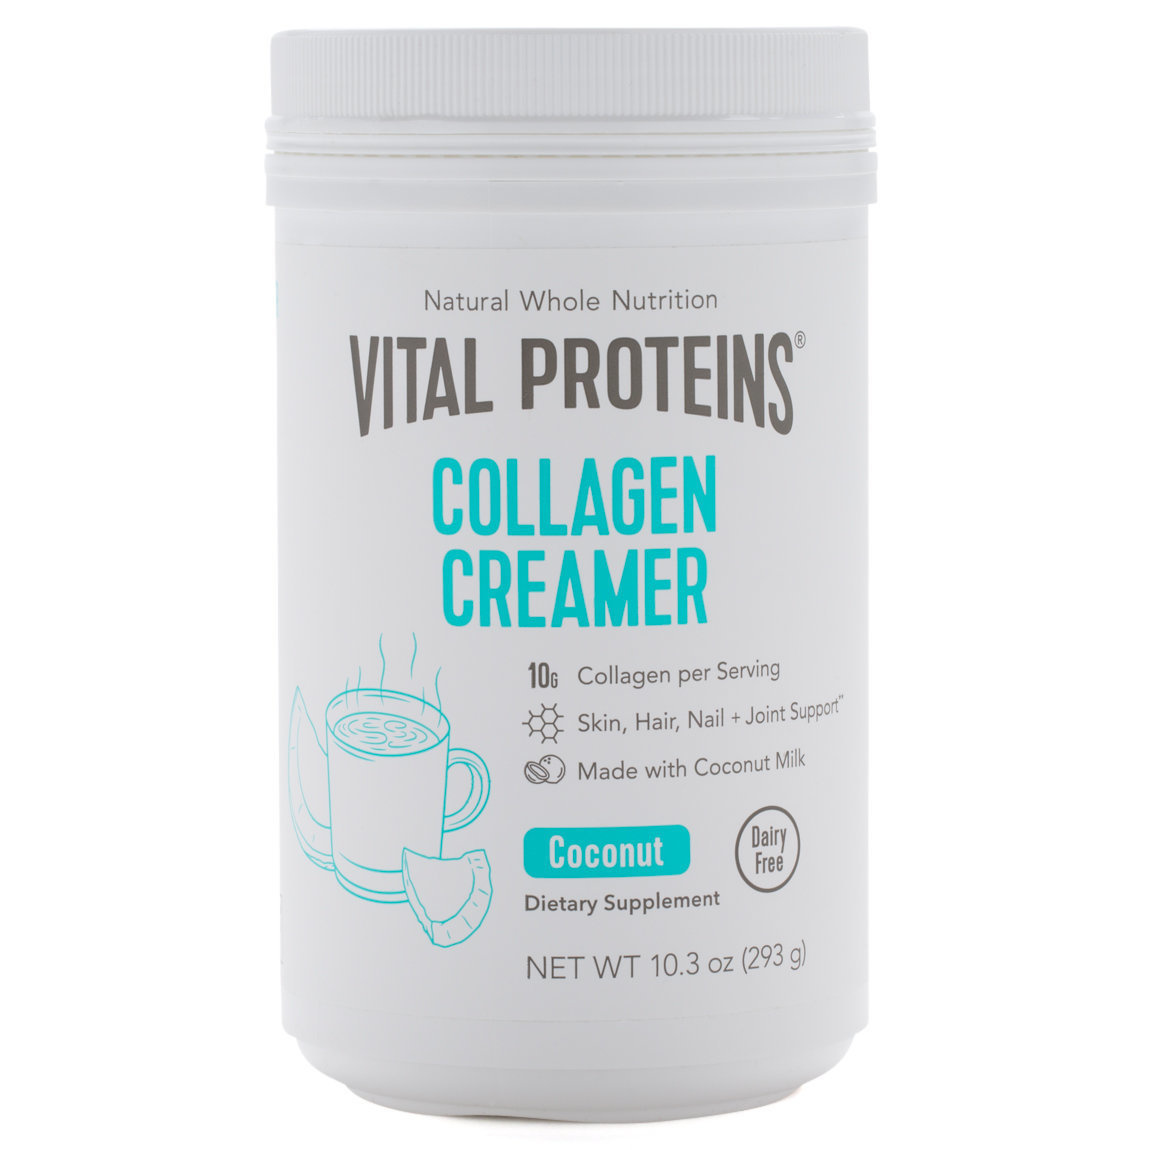 Vital Proteins Collagen Creamer Le Beauty Bar